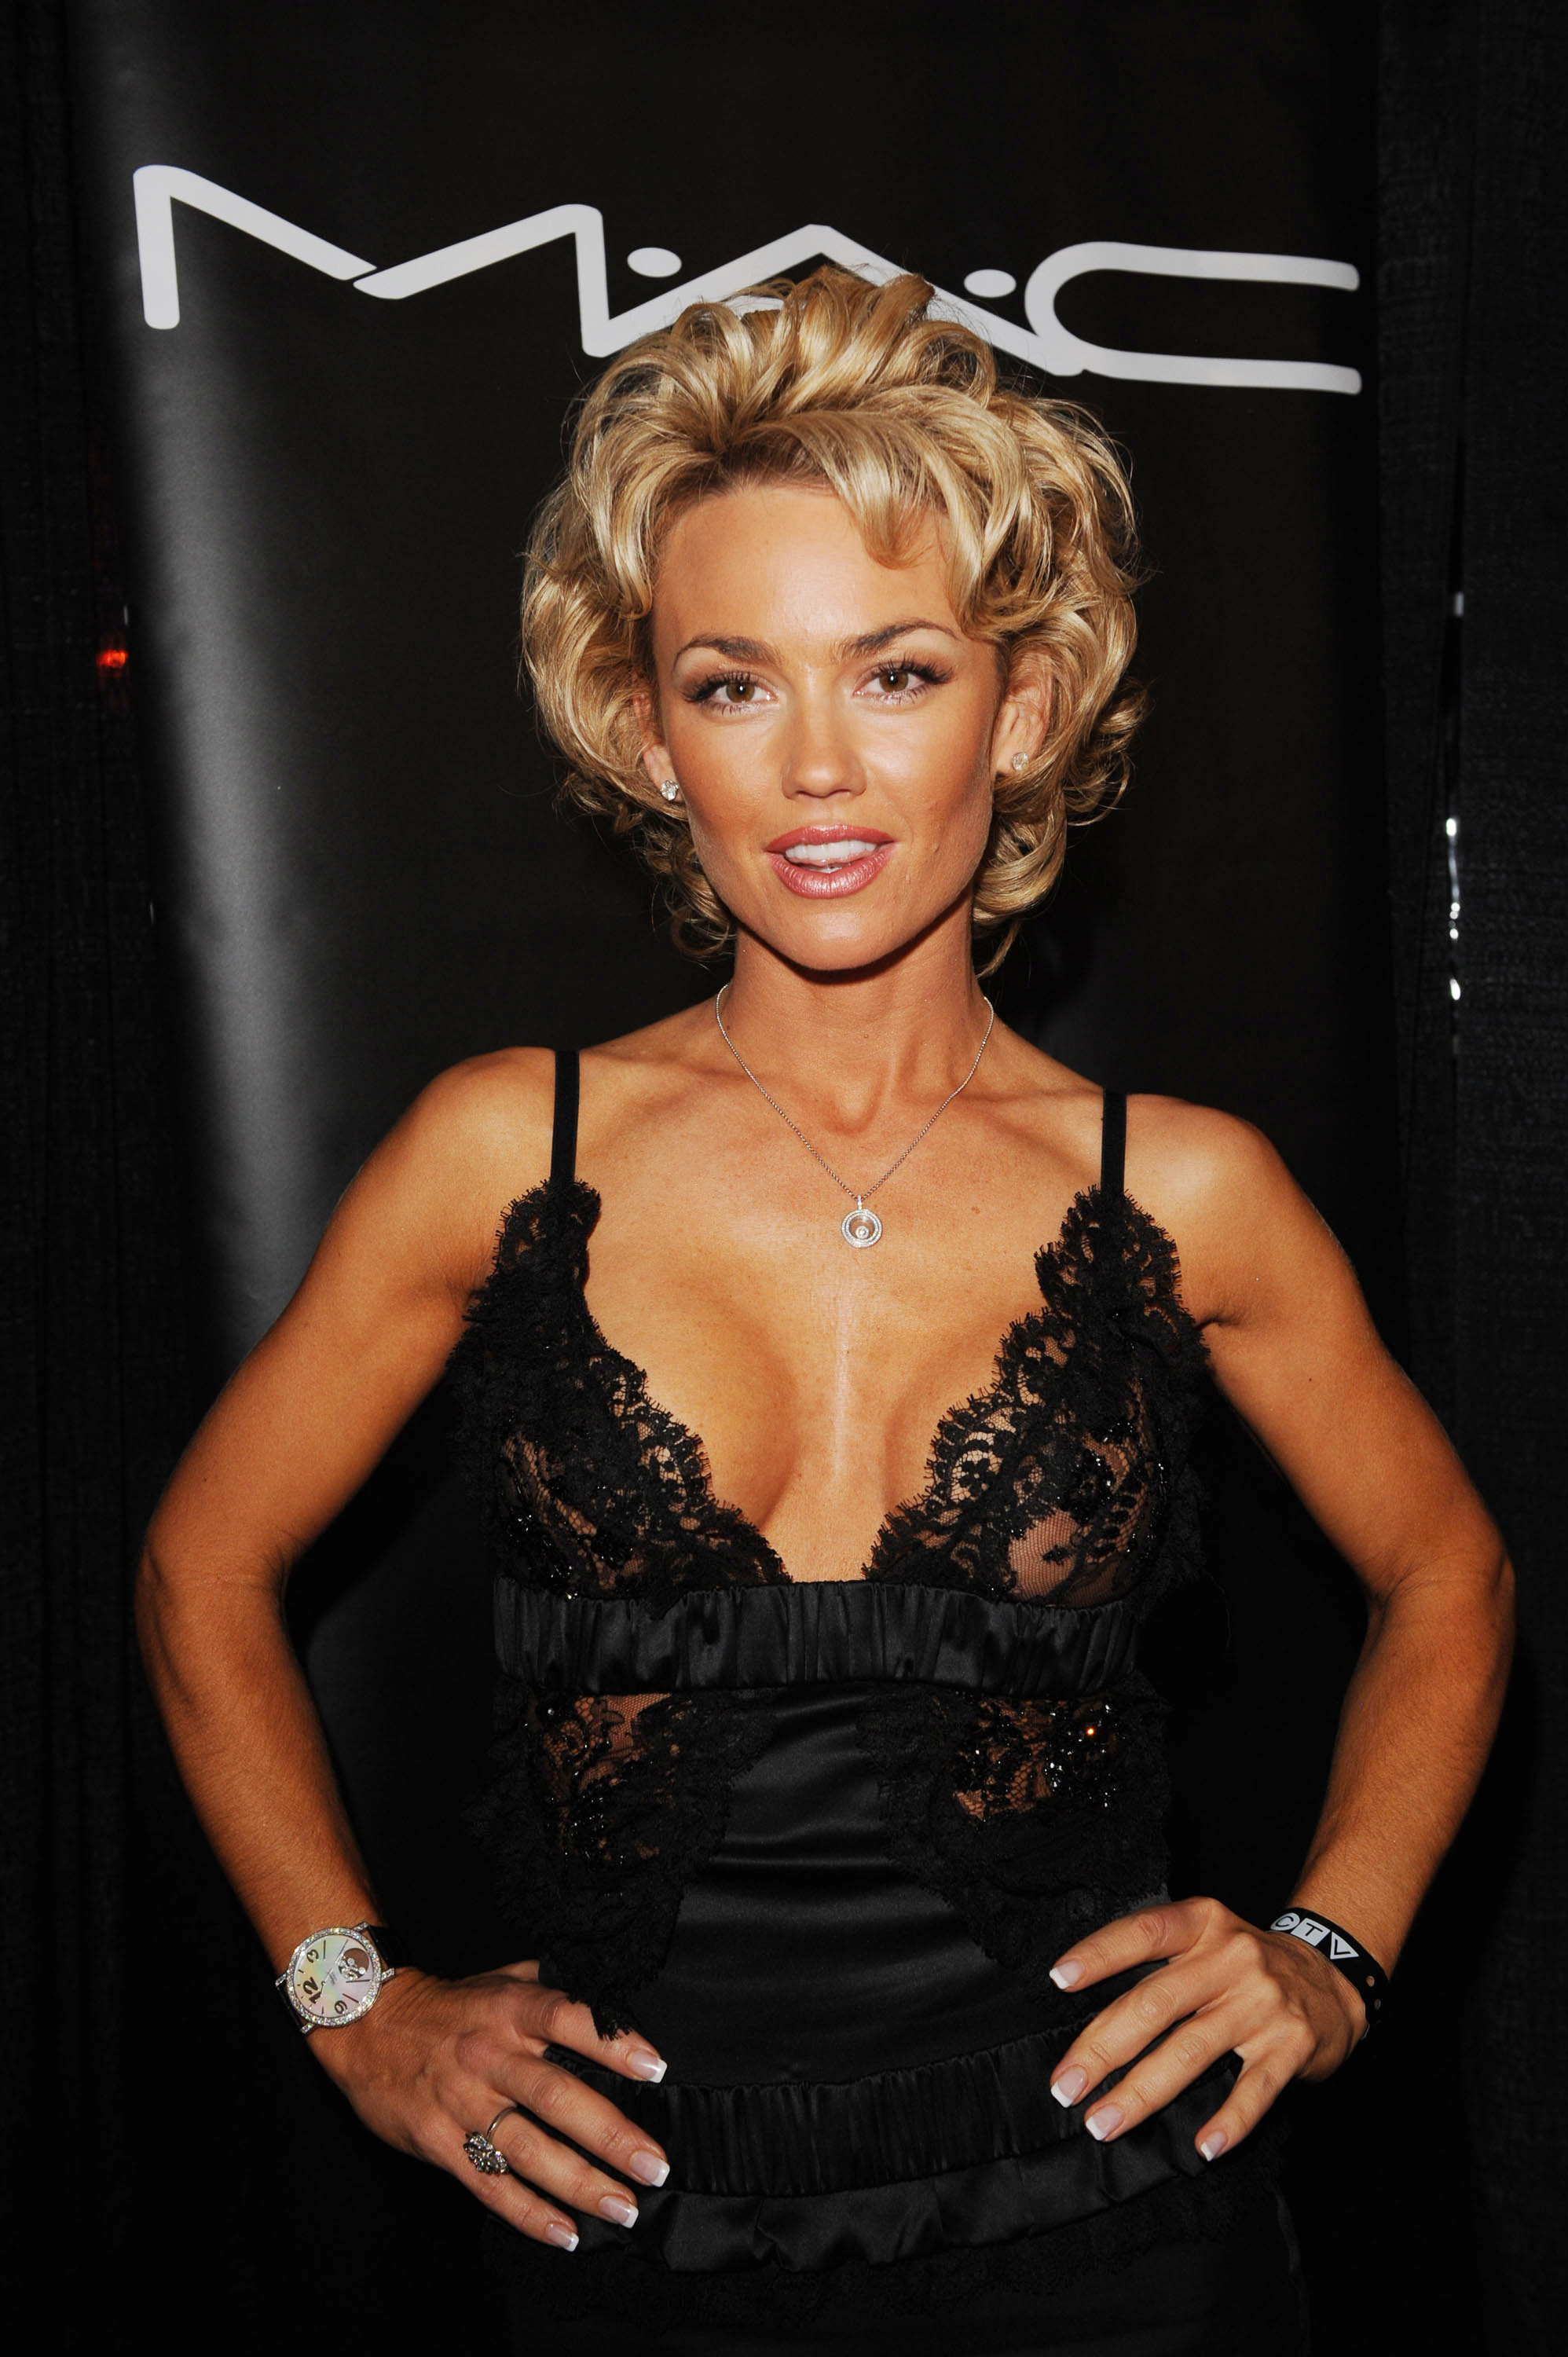 WATCH: Kelly Carlson Nude & Pussy! New Leaked Photos